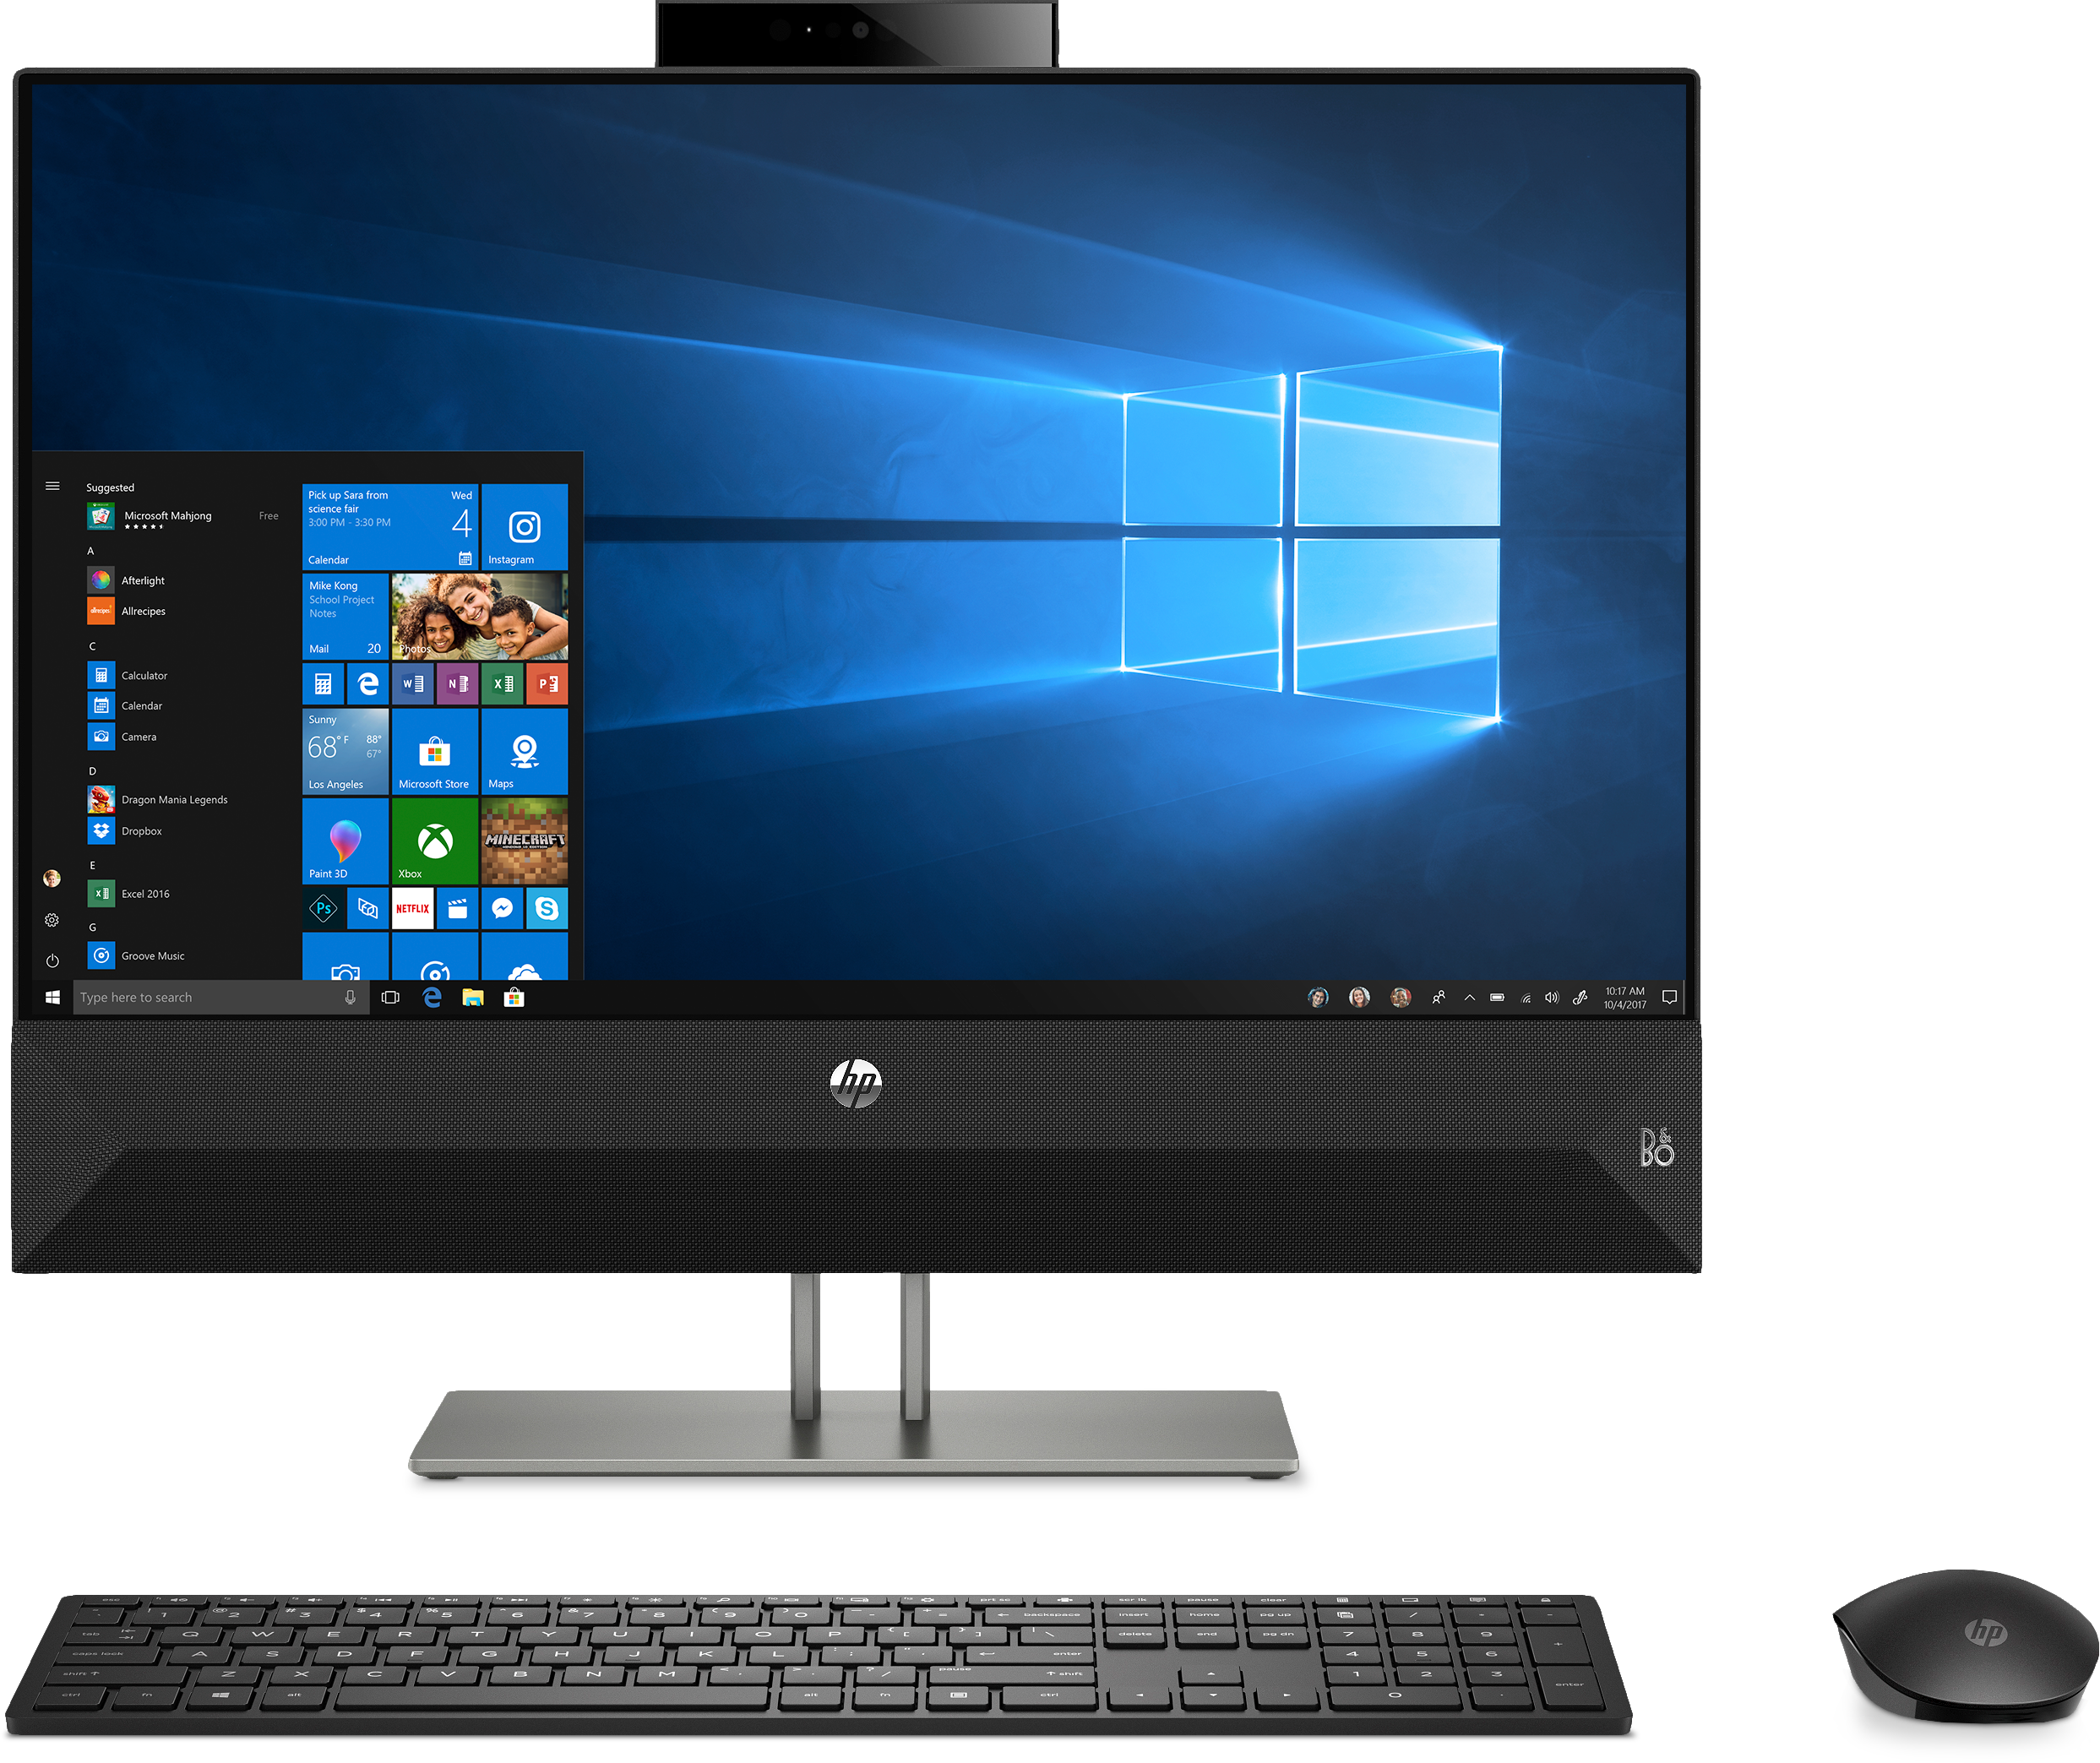 HP Pavilion 24-XA0031 AIO from the front with keyboard and mouse. Windows is on screen.